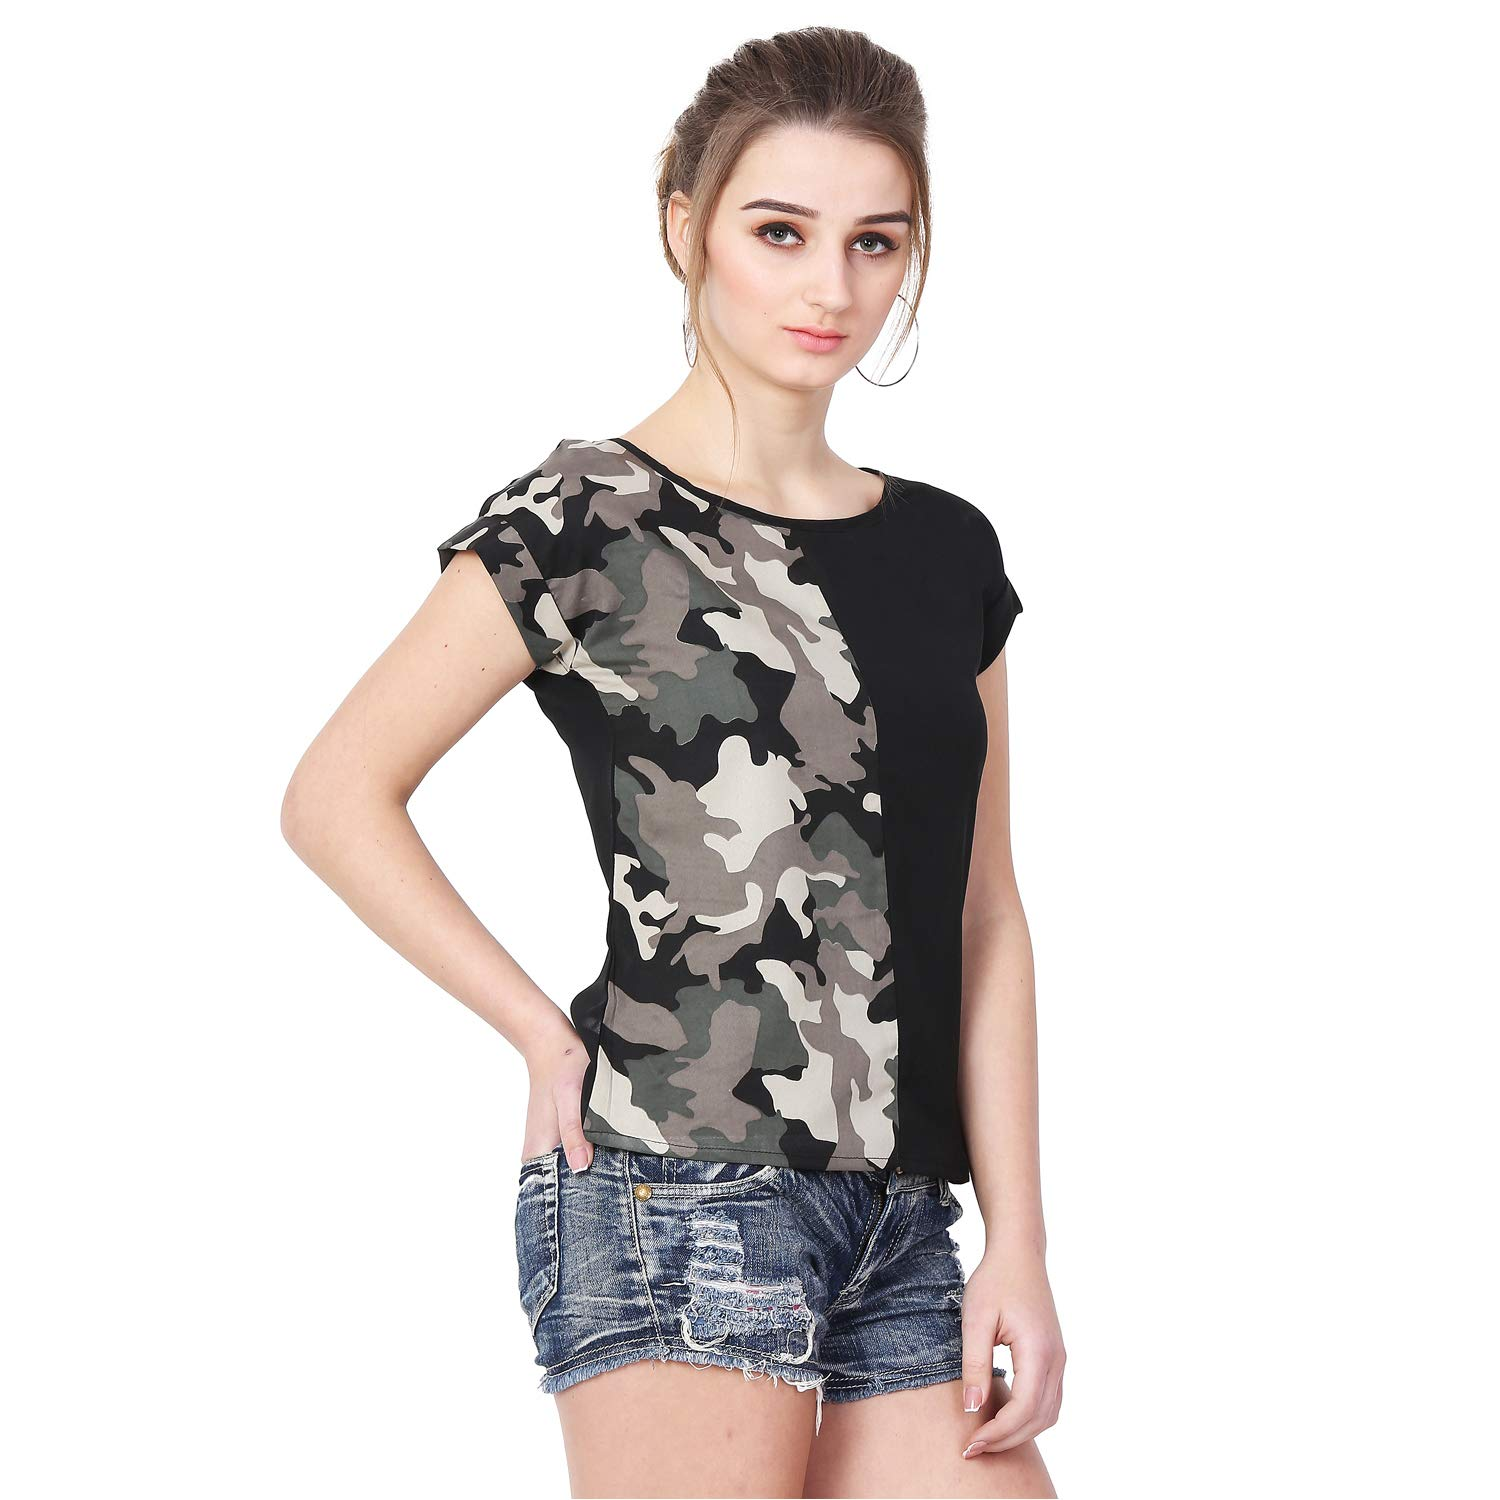 7c55b23f MALLORY WINSTON Women Black with Army Print top.: Amazon.in: Clothing &  Accessories